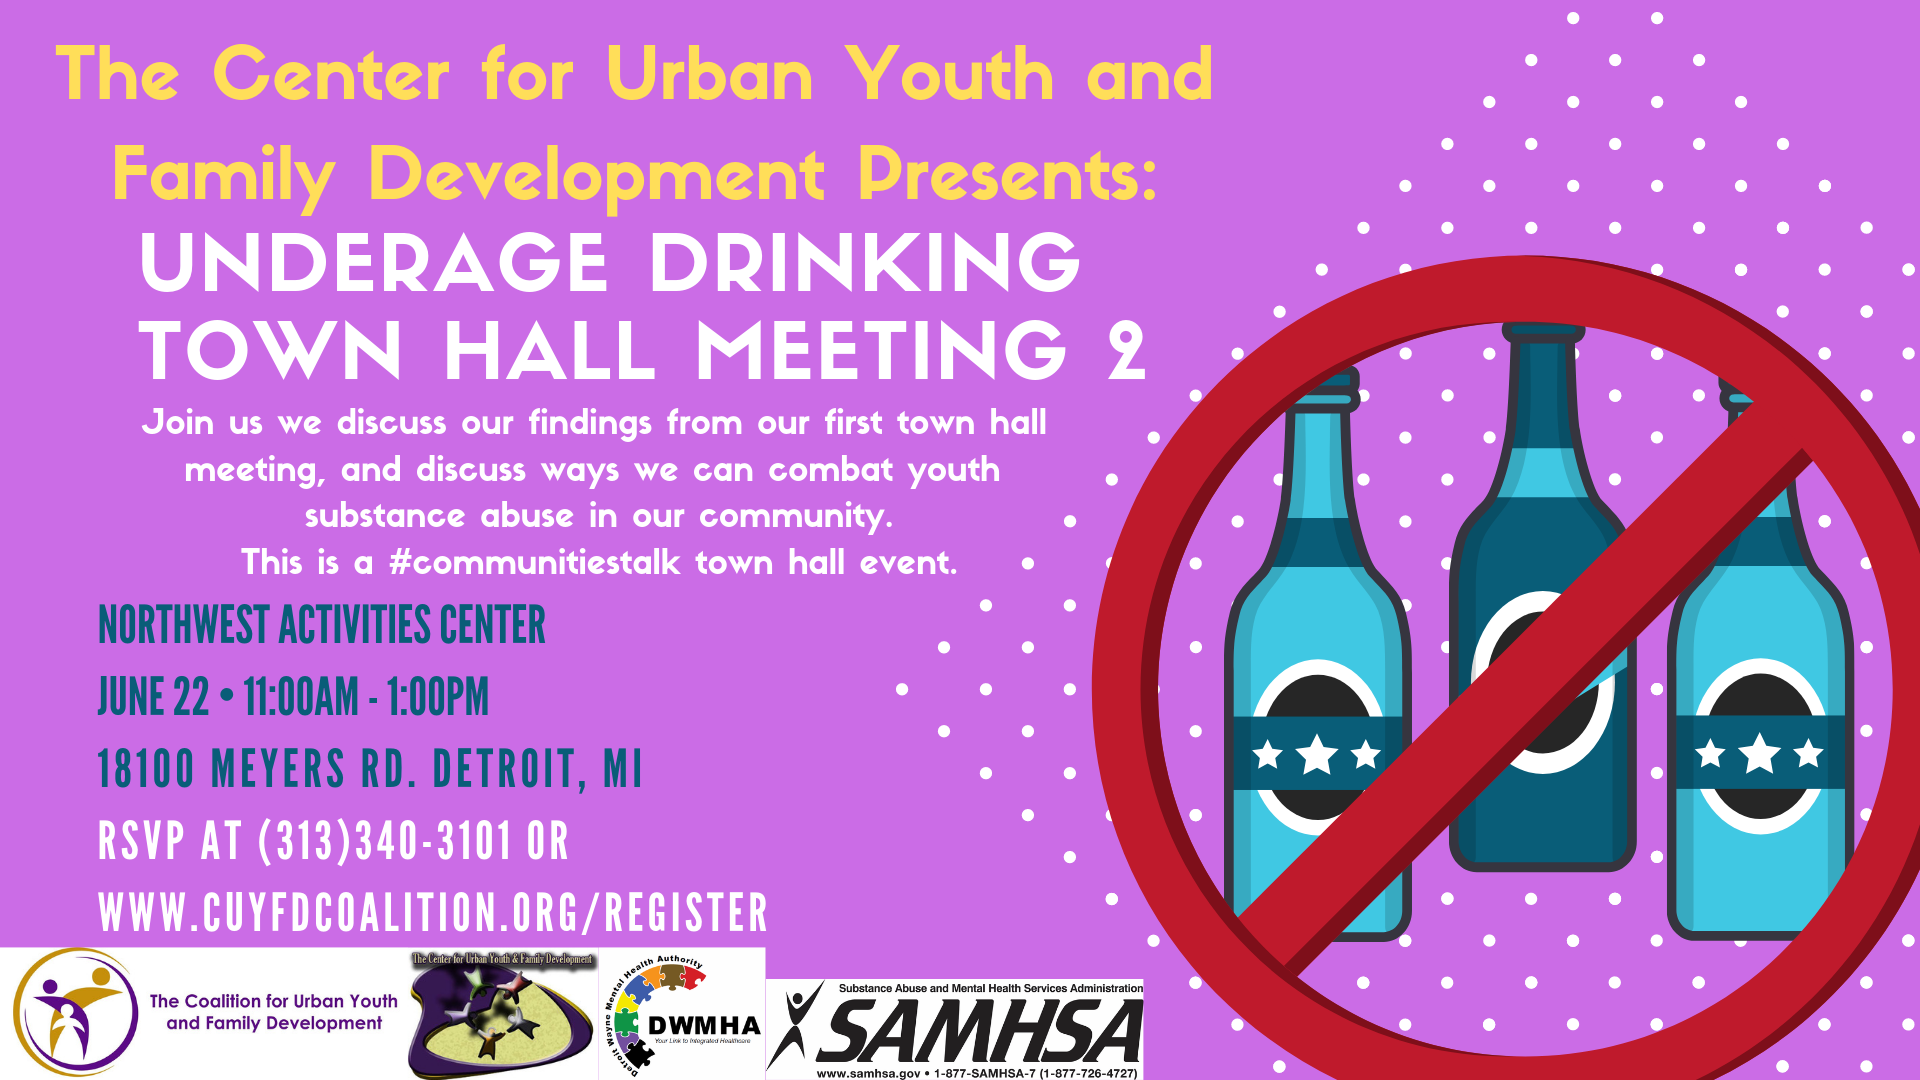 Underage Drinking Townhall Meeting.png